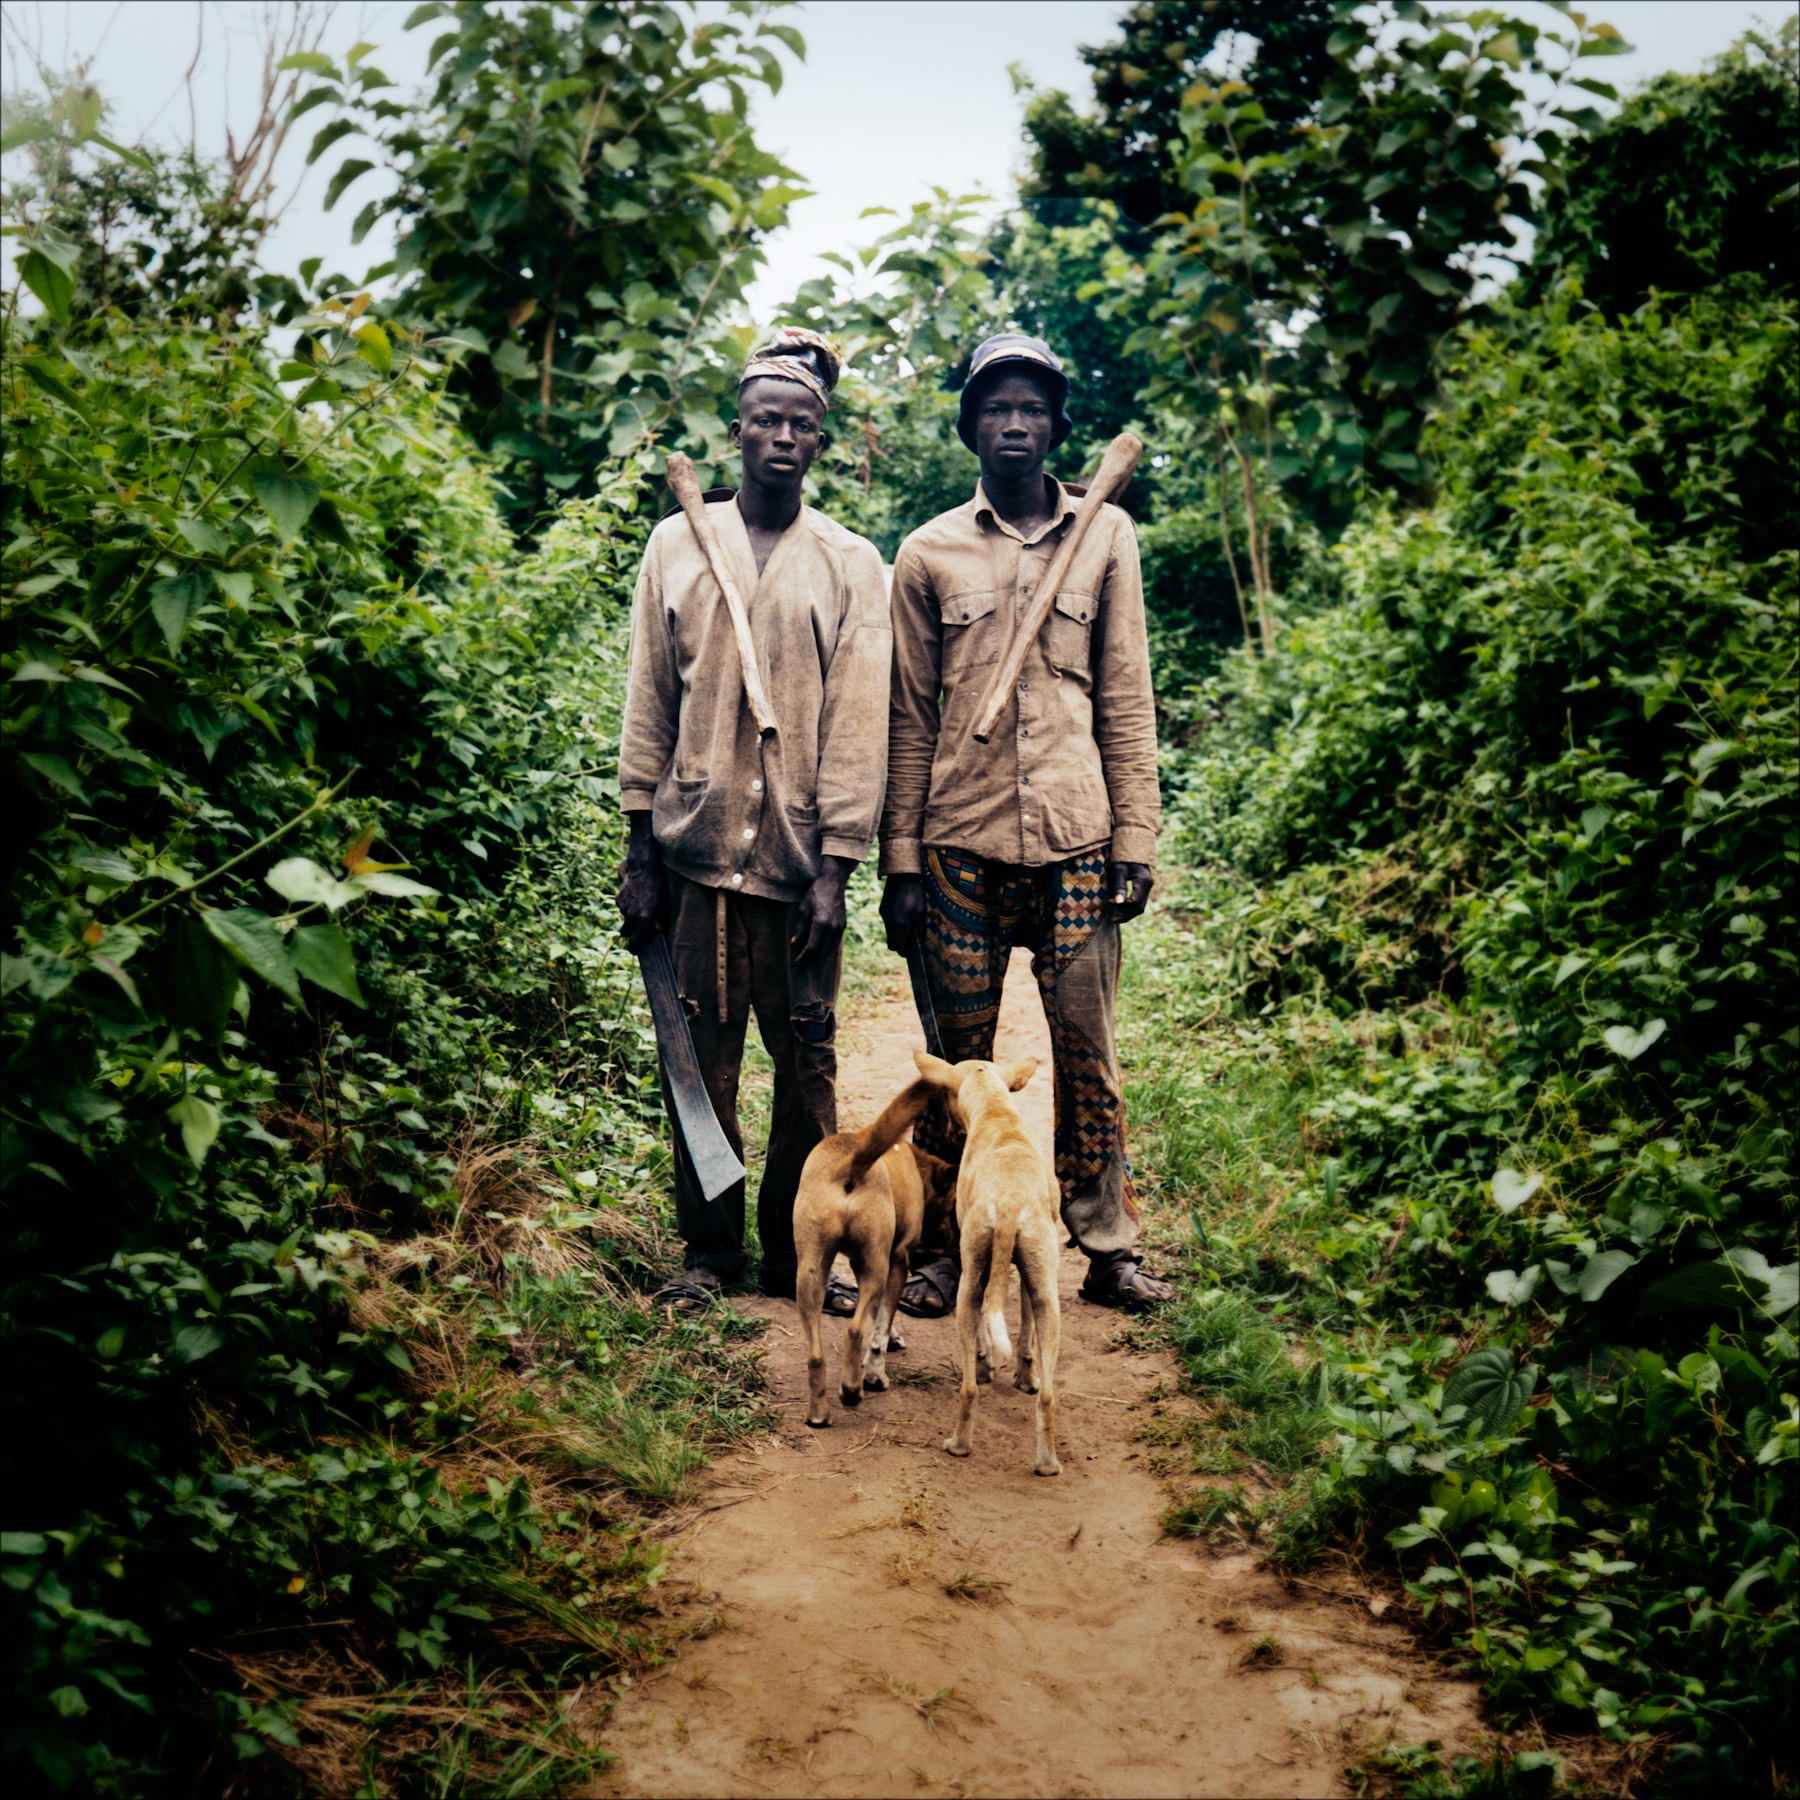 Cultivators with their dogs on their way to work, Sanga village.